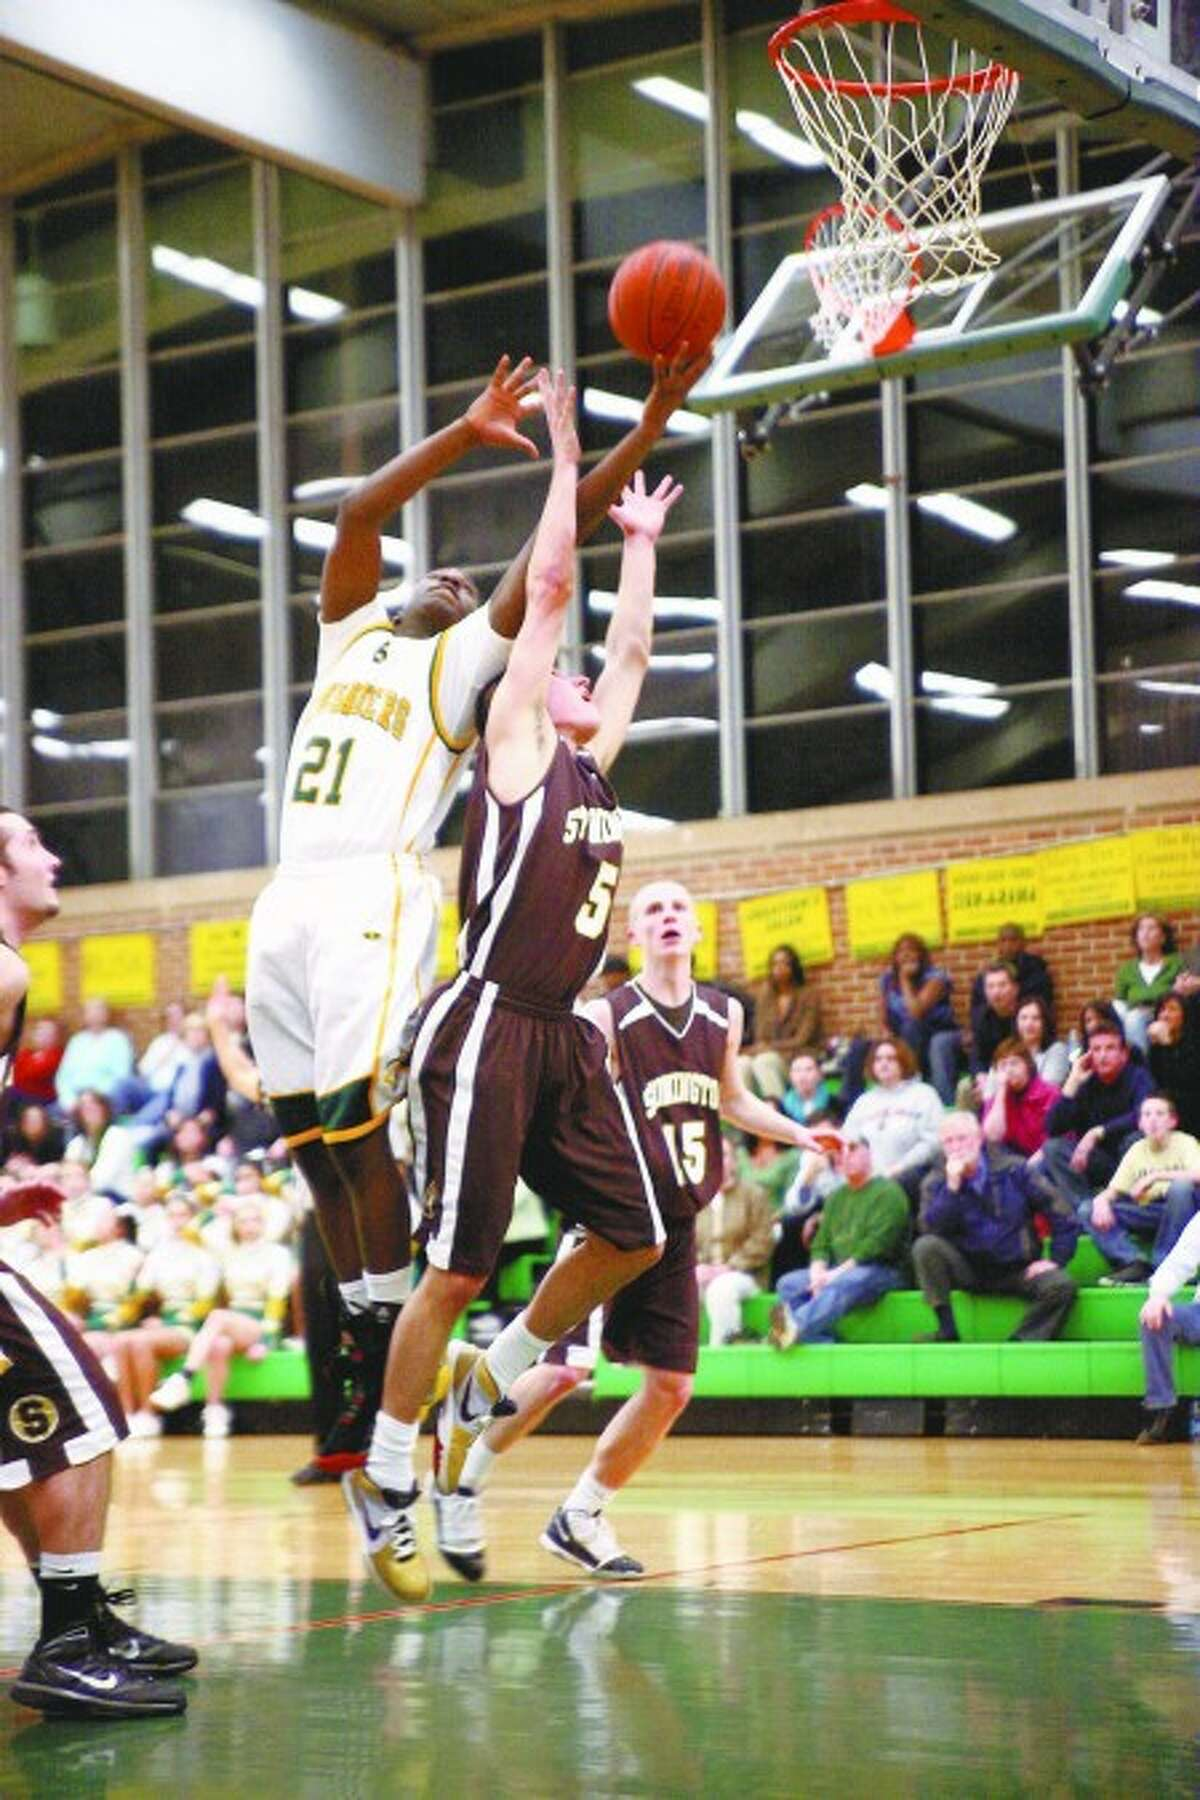 Trinity Catholic''s Aaron Spence (21) has his hands on a rebound during a Class M state playoff game on Tuesday, March 9 at Walsh Court. Times photo/Danielle Robinson